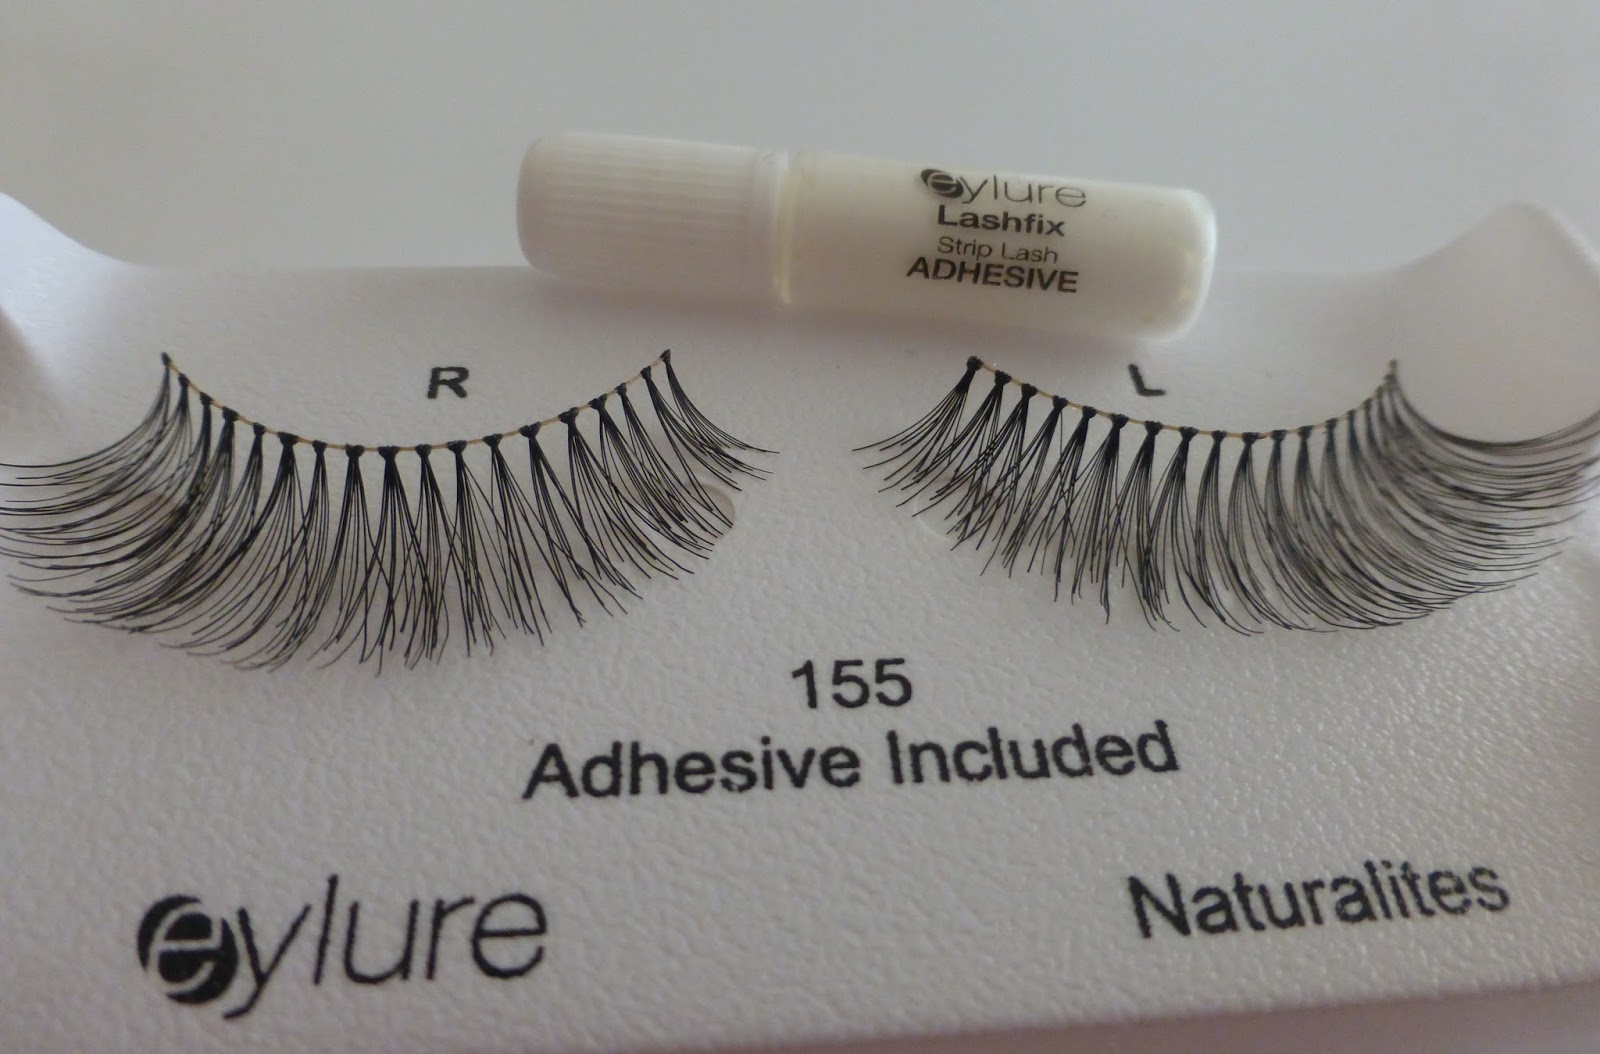 Eylure Lengthening Lashes 155, georgina grogan